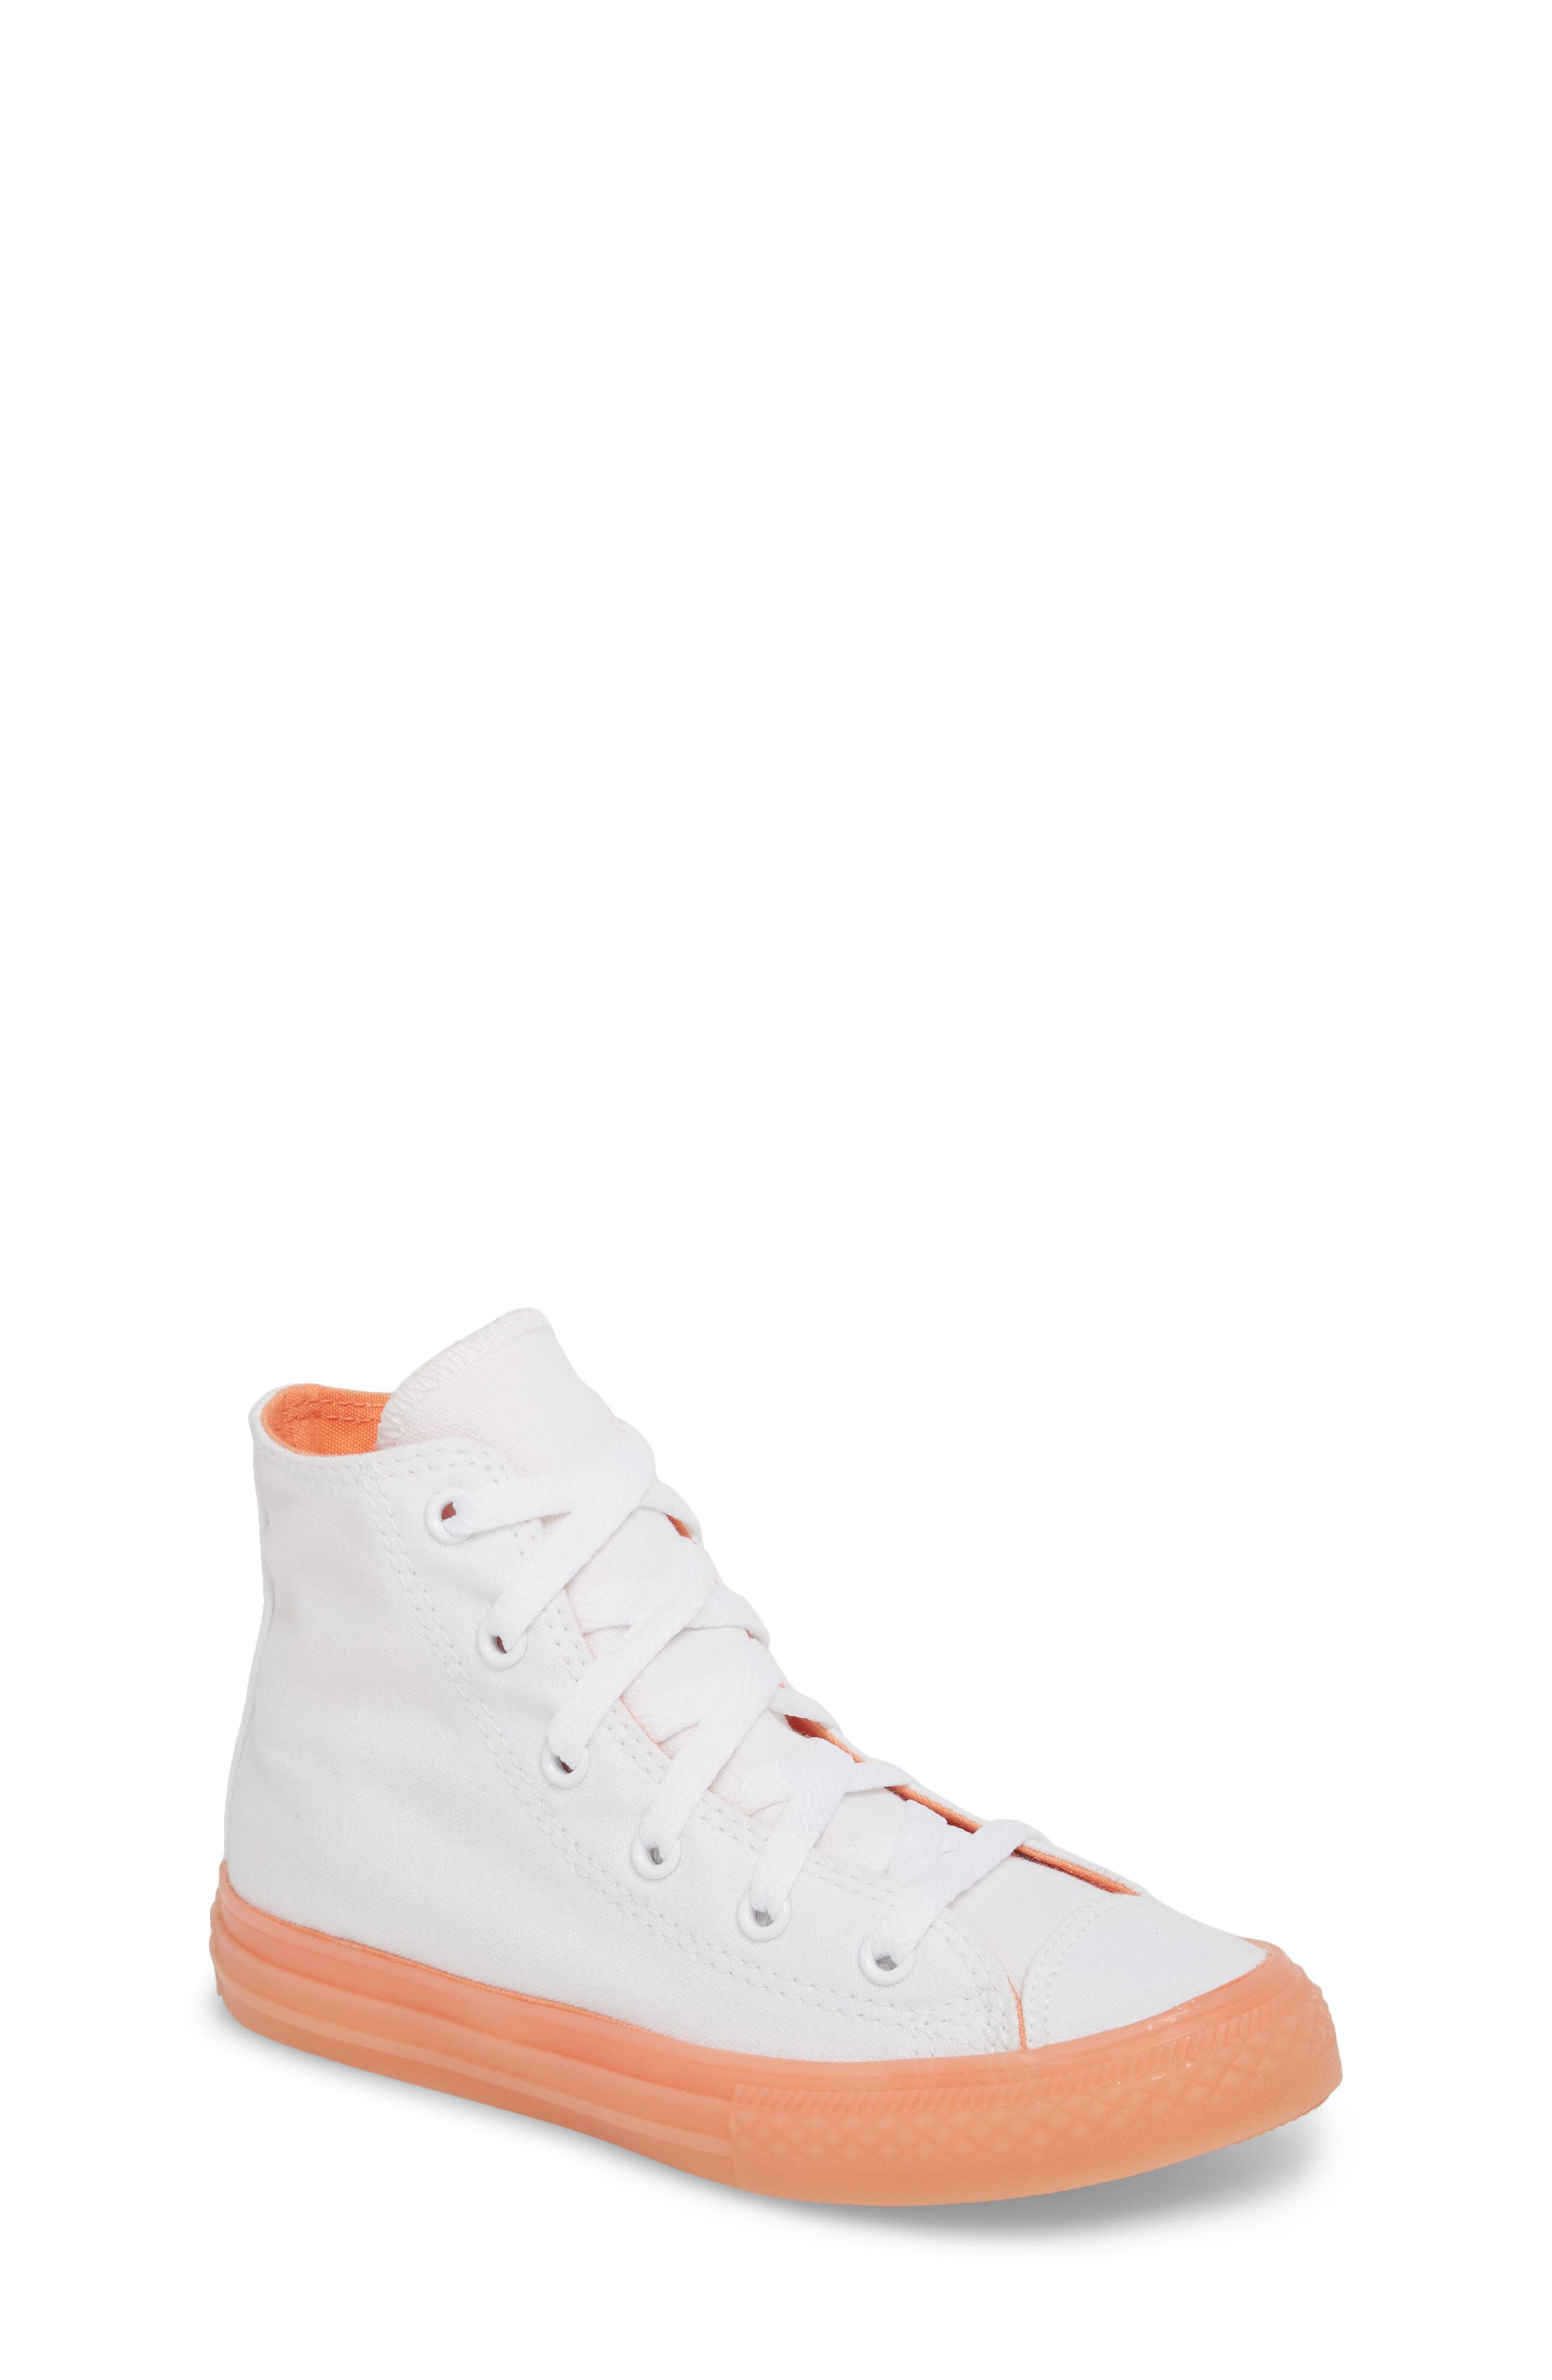 Chuck Taylor<sup>®</sup> All Star<sup>®</sup> Jelly High Top Sneaker,                             Main thumbnail 1, color,                             Orange